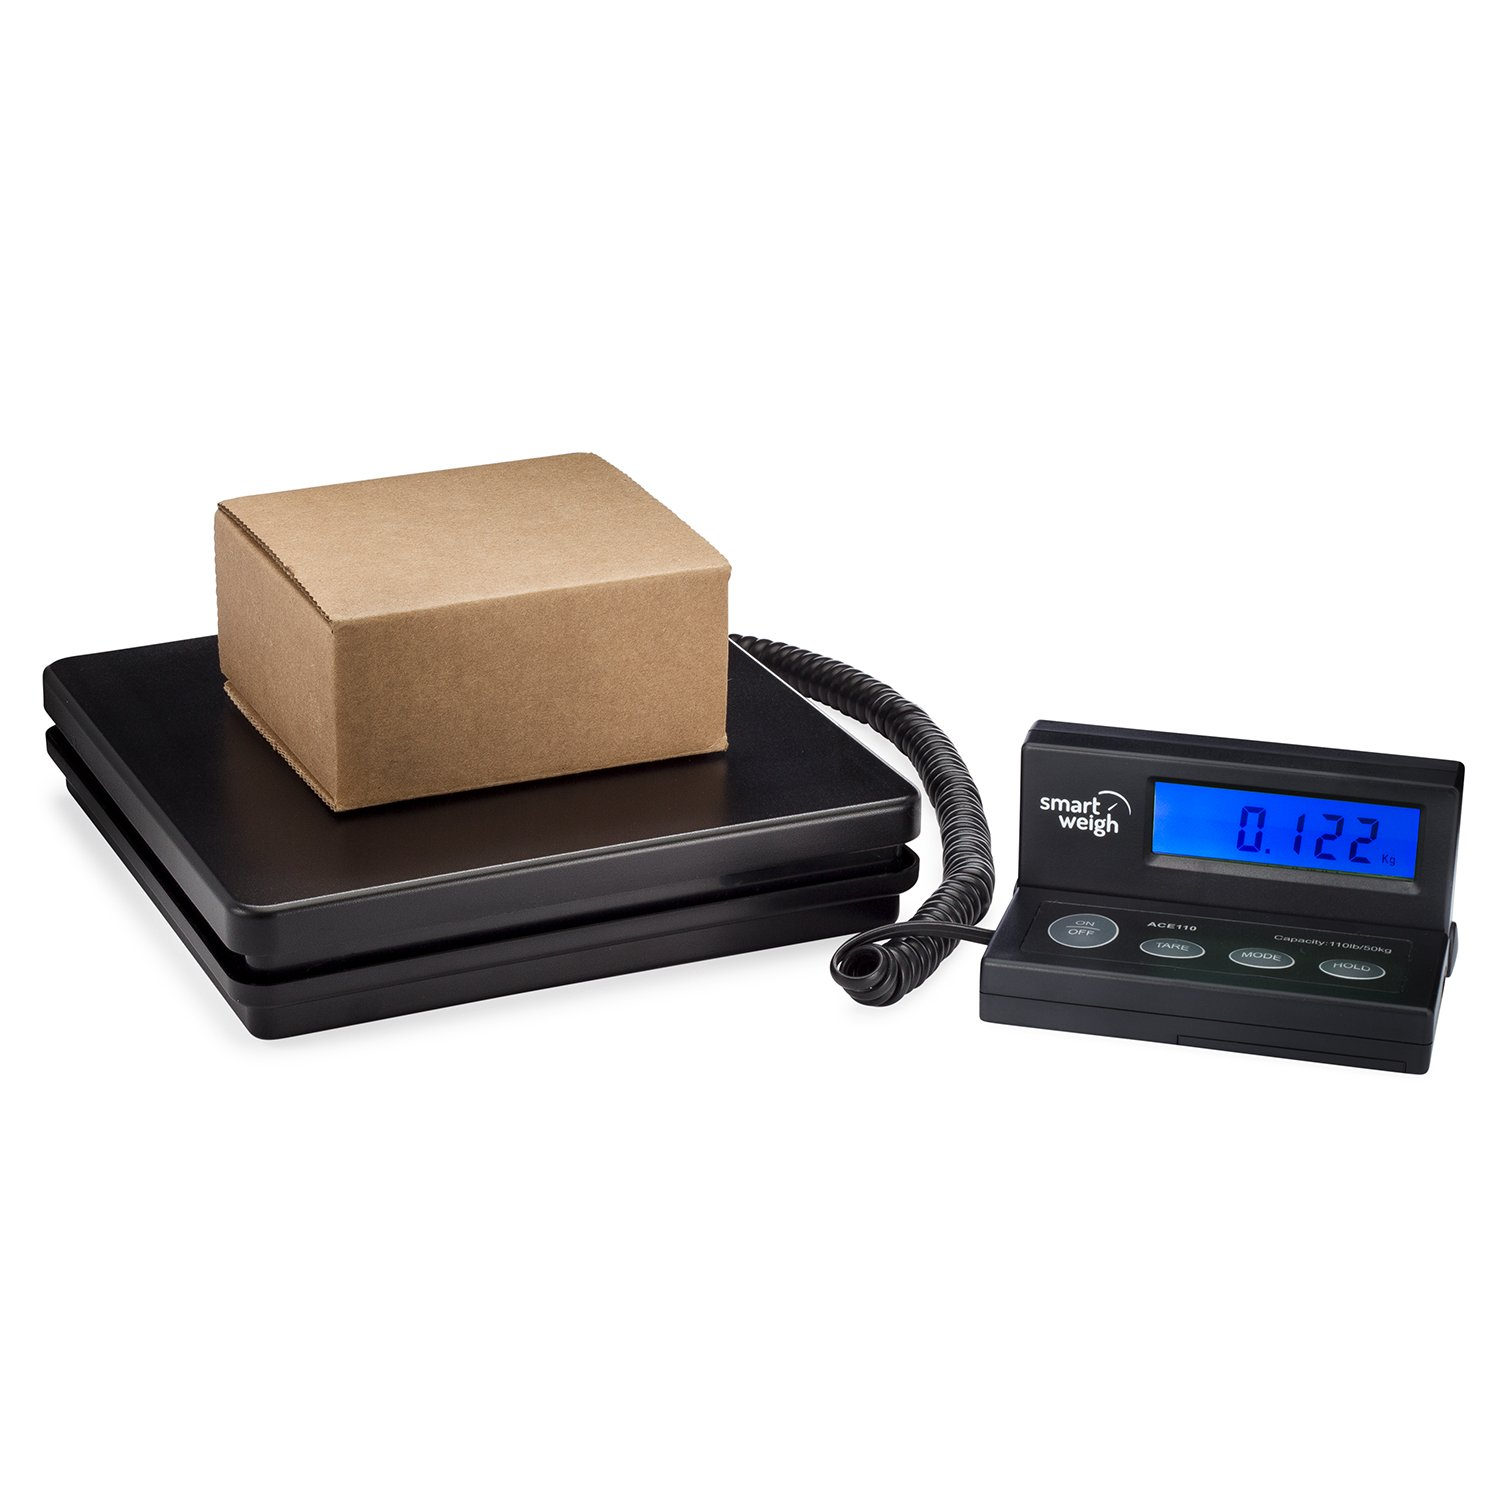 Smart Weigh Digital Shipping and Postal Weight Scale, 110 lbs x 0.1 oz, UPS USPS Post Office Scale by Smart Weigh